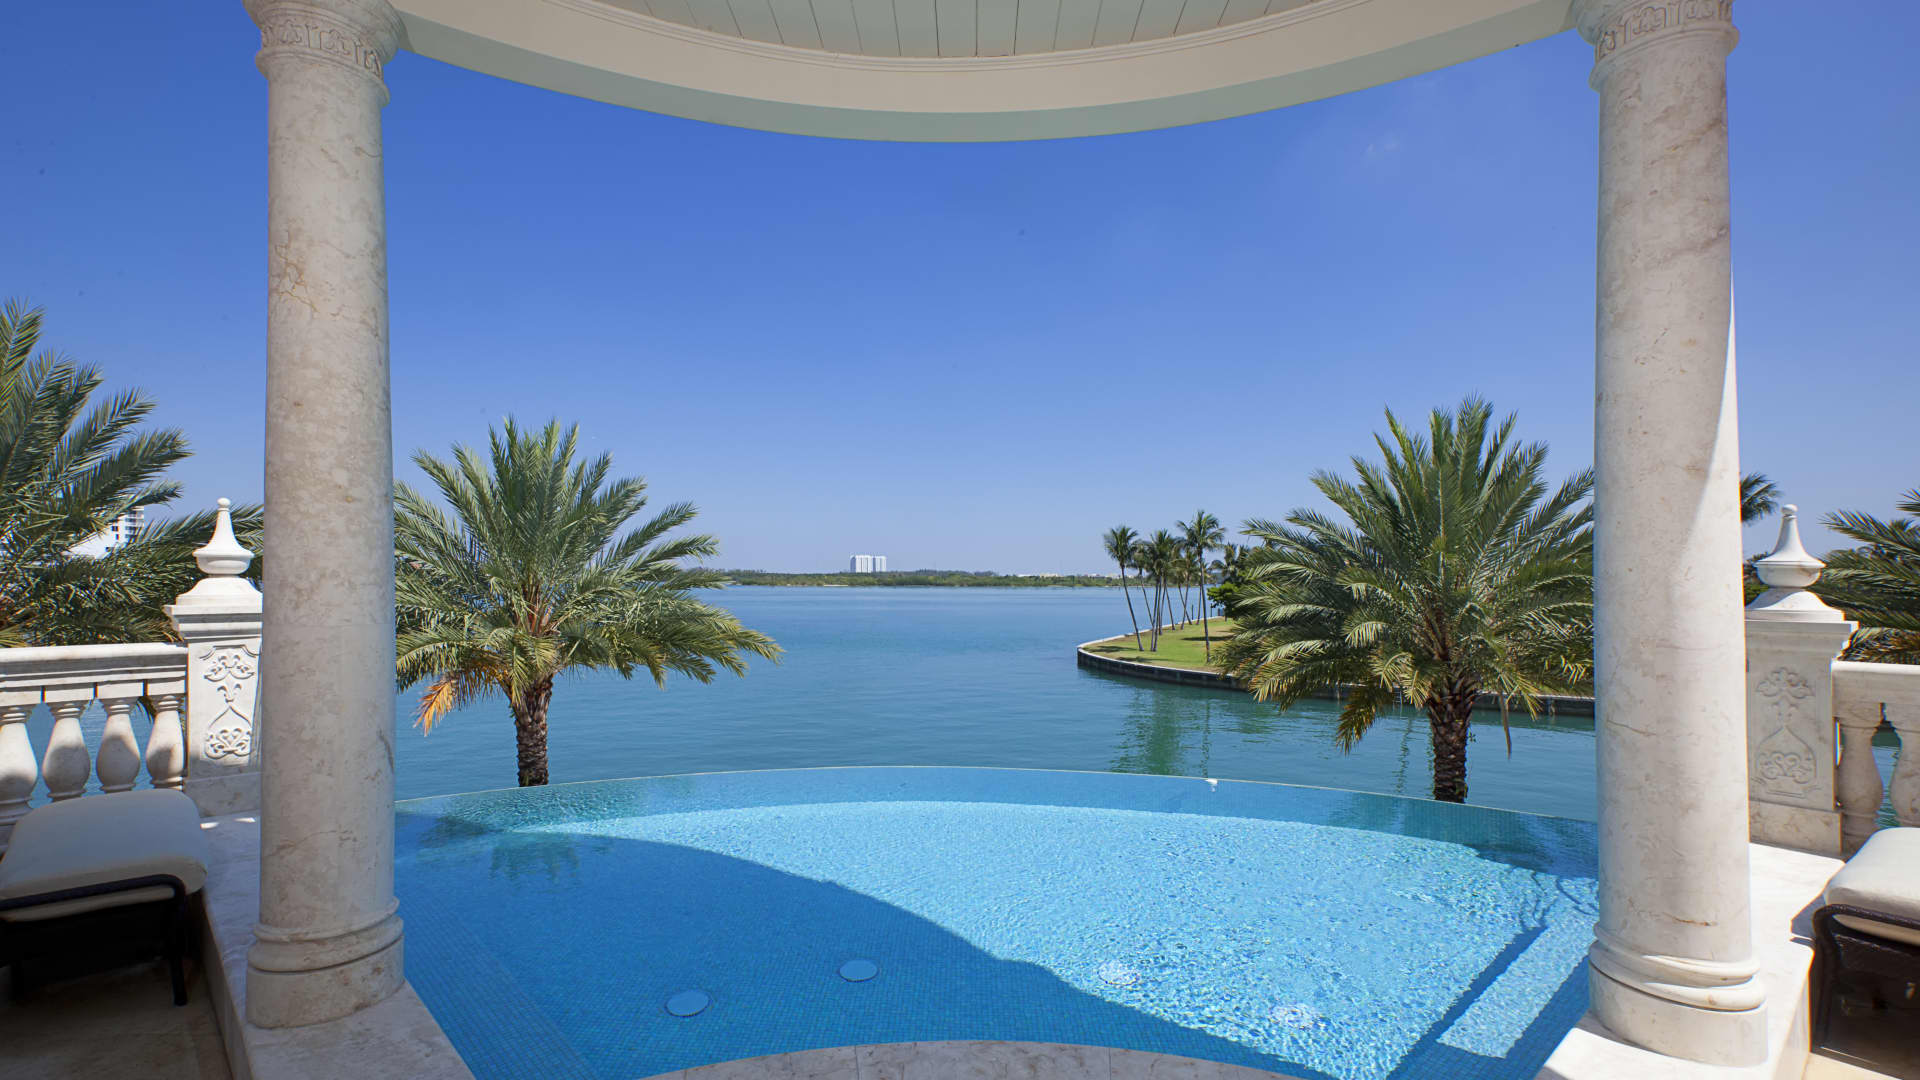 Off the owner's suite is a terrace and infinity pool.